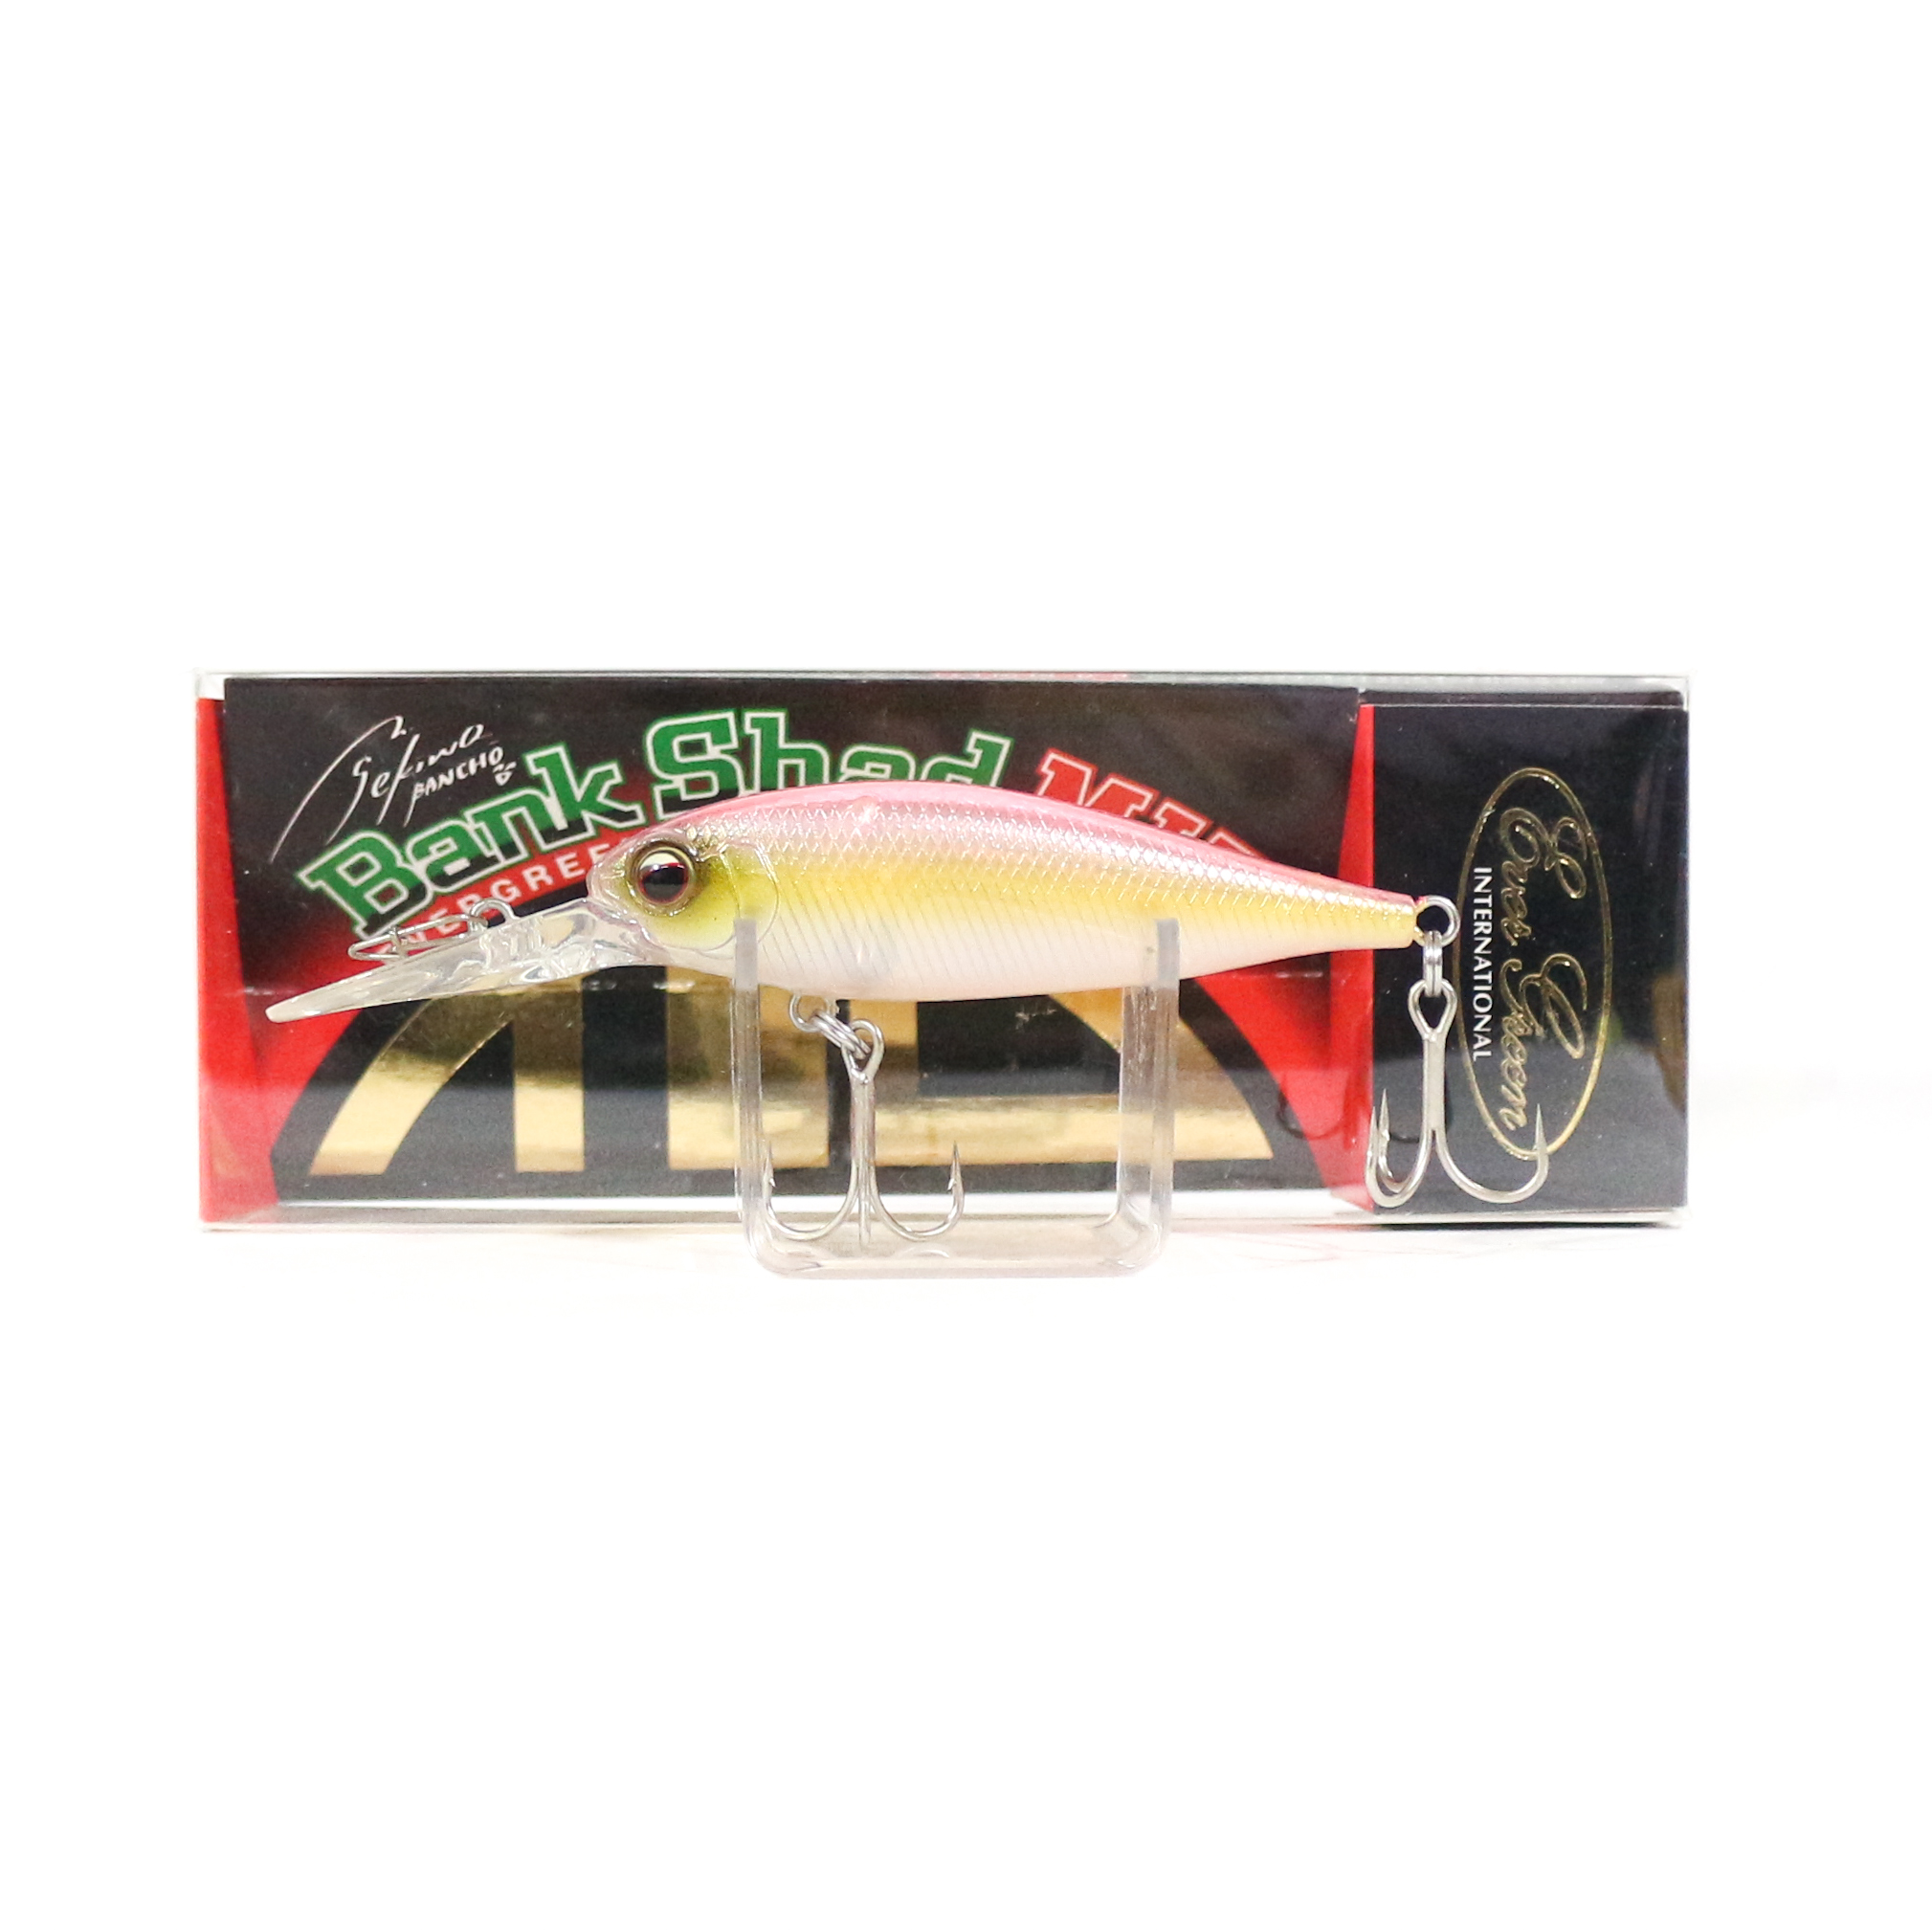 Evergreen Bank Shad Mid Range Floating Lure 54 (8643)